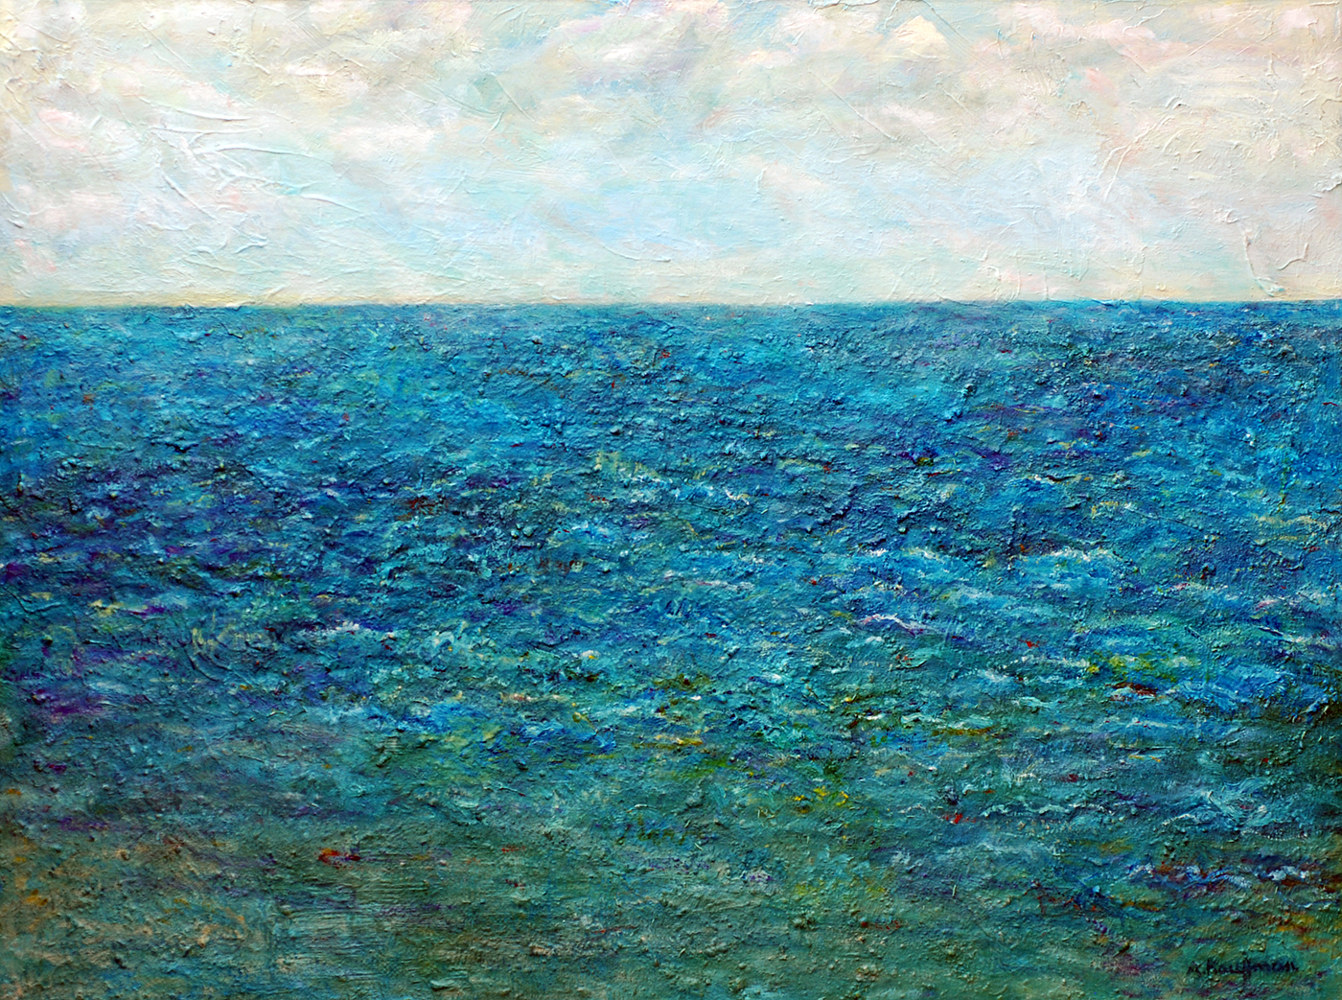 Mixed-media artwork Amy Kaufman Ocean by Amy Kaufman